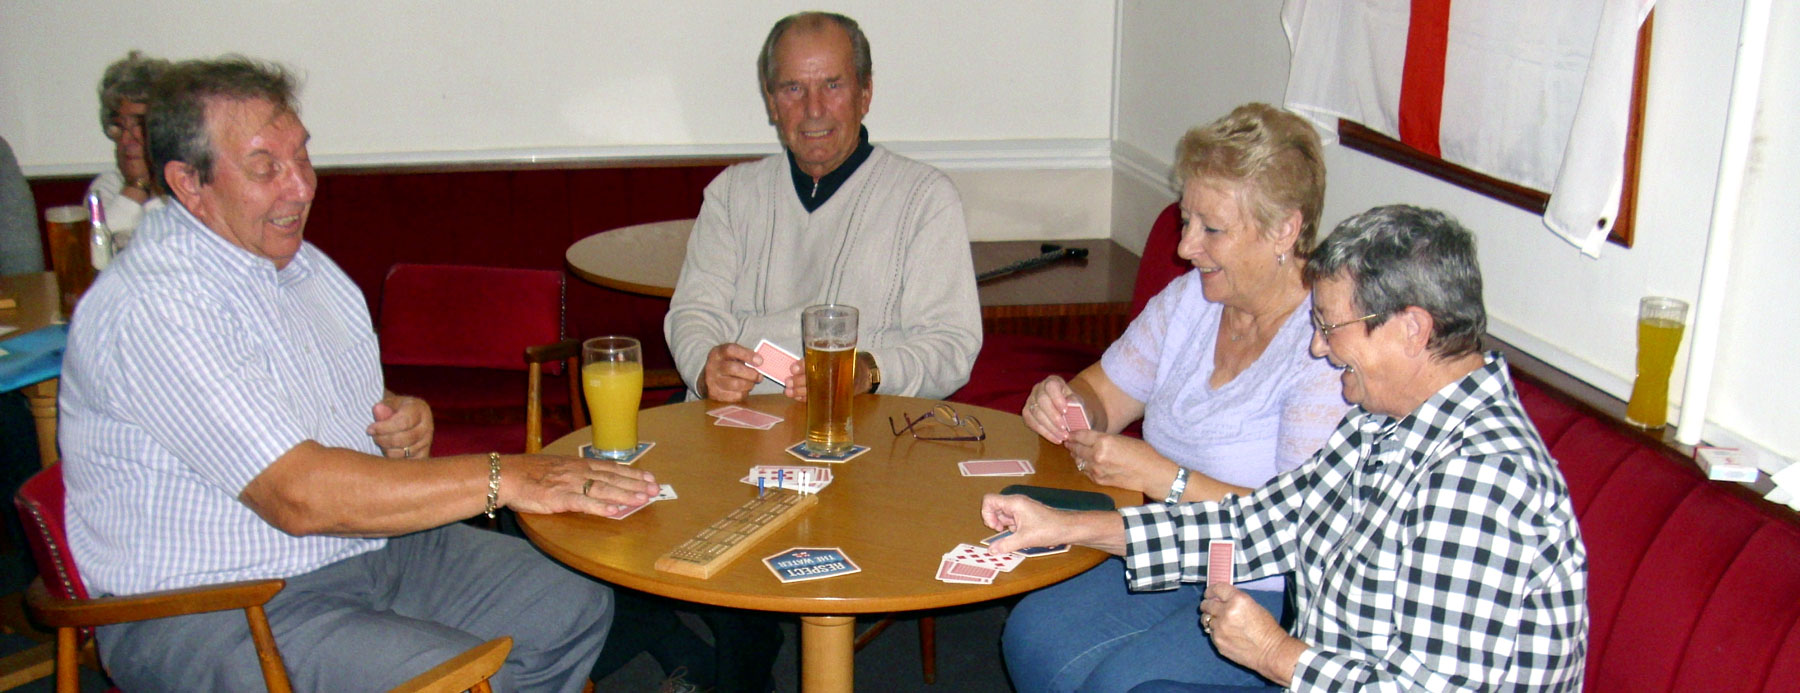 Cribbage - A great card game